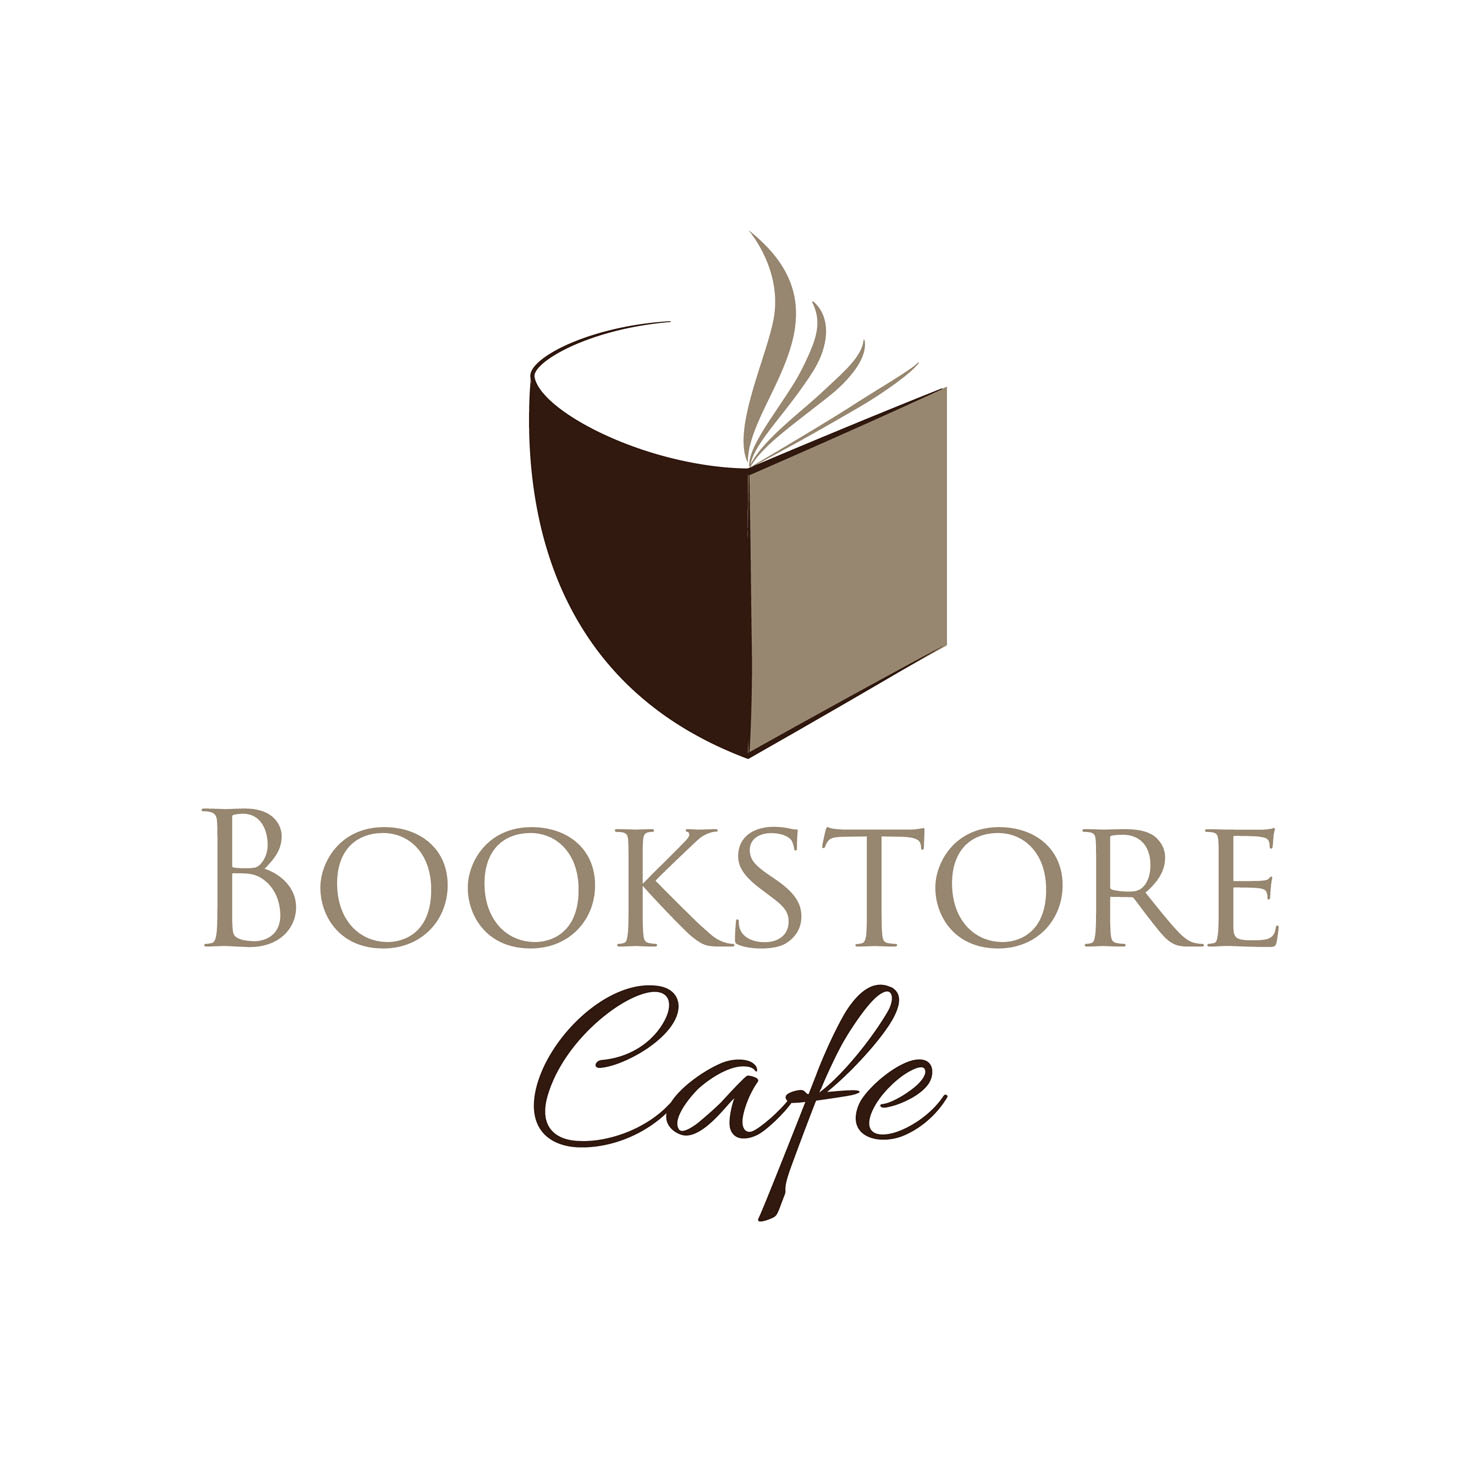 bookstore cafe by brankaeremija  a perfect logo for Education